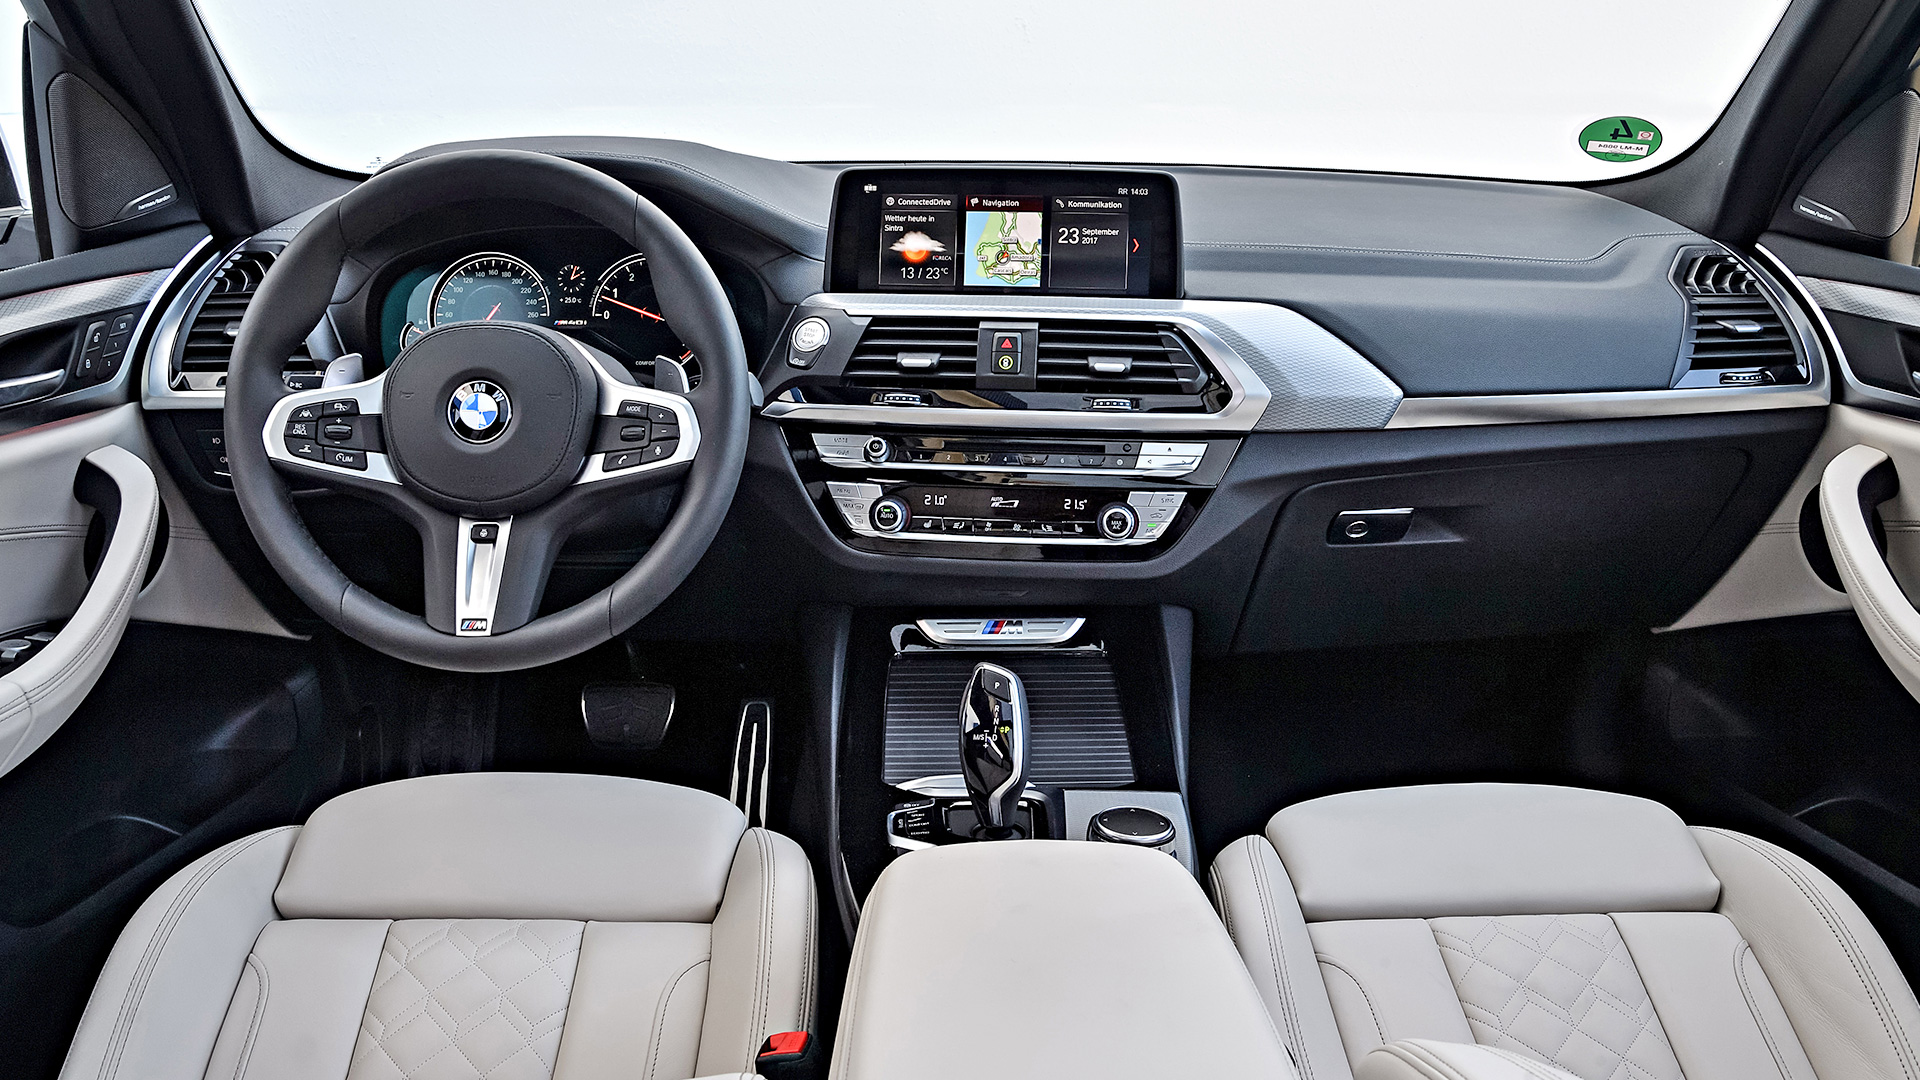 bmw x3 2018 price mileage reviews specification gallery overdrive. Black Bedroom Furniture Sets. Home Design Ideas